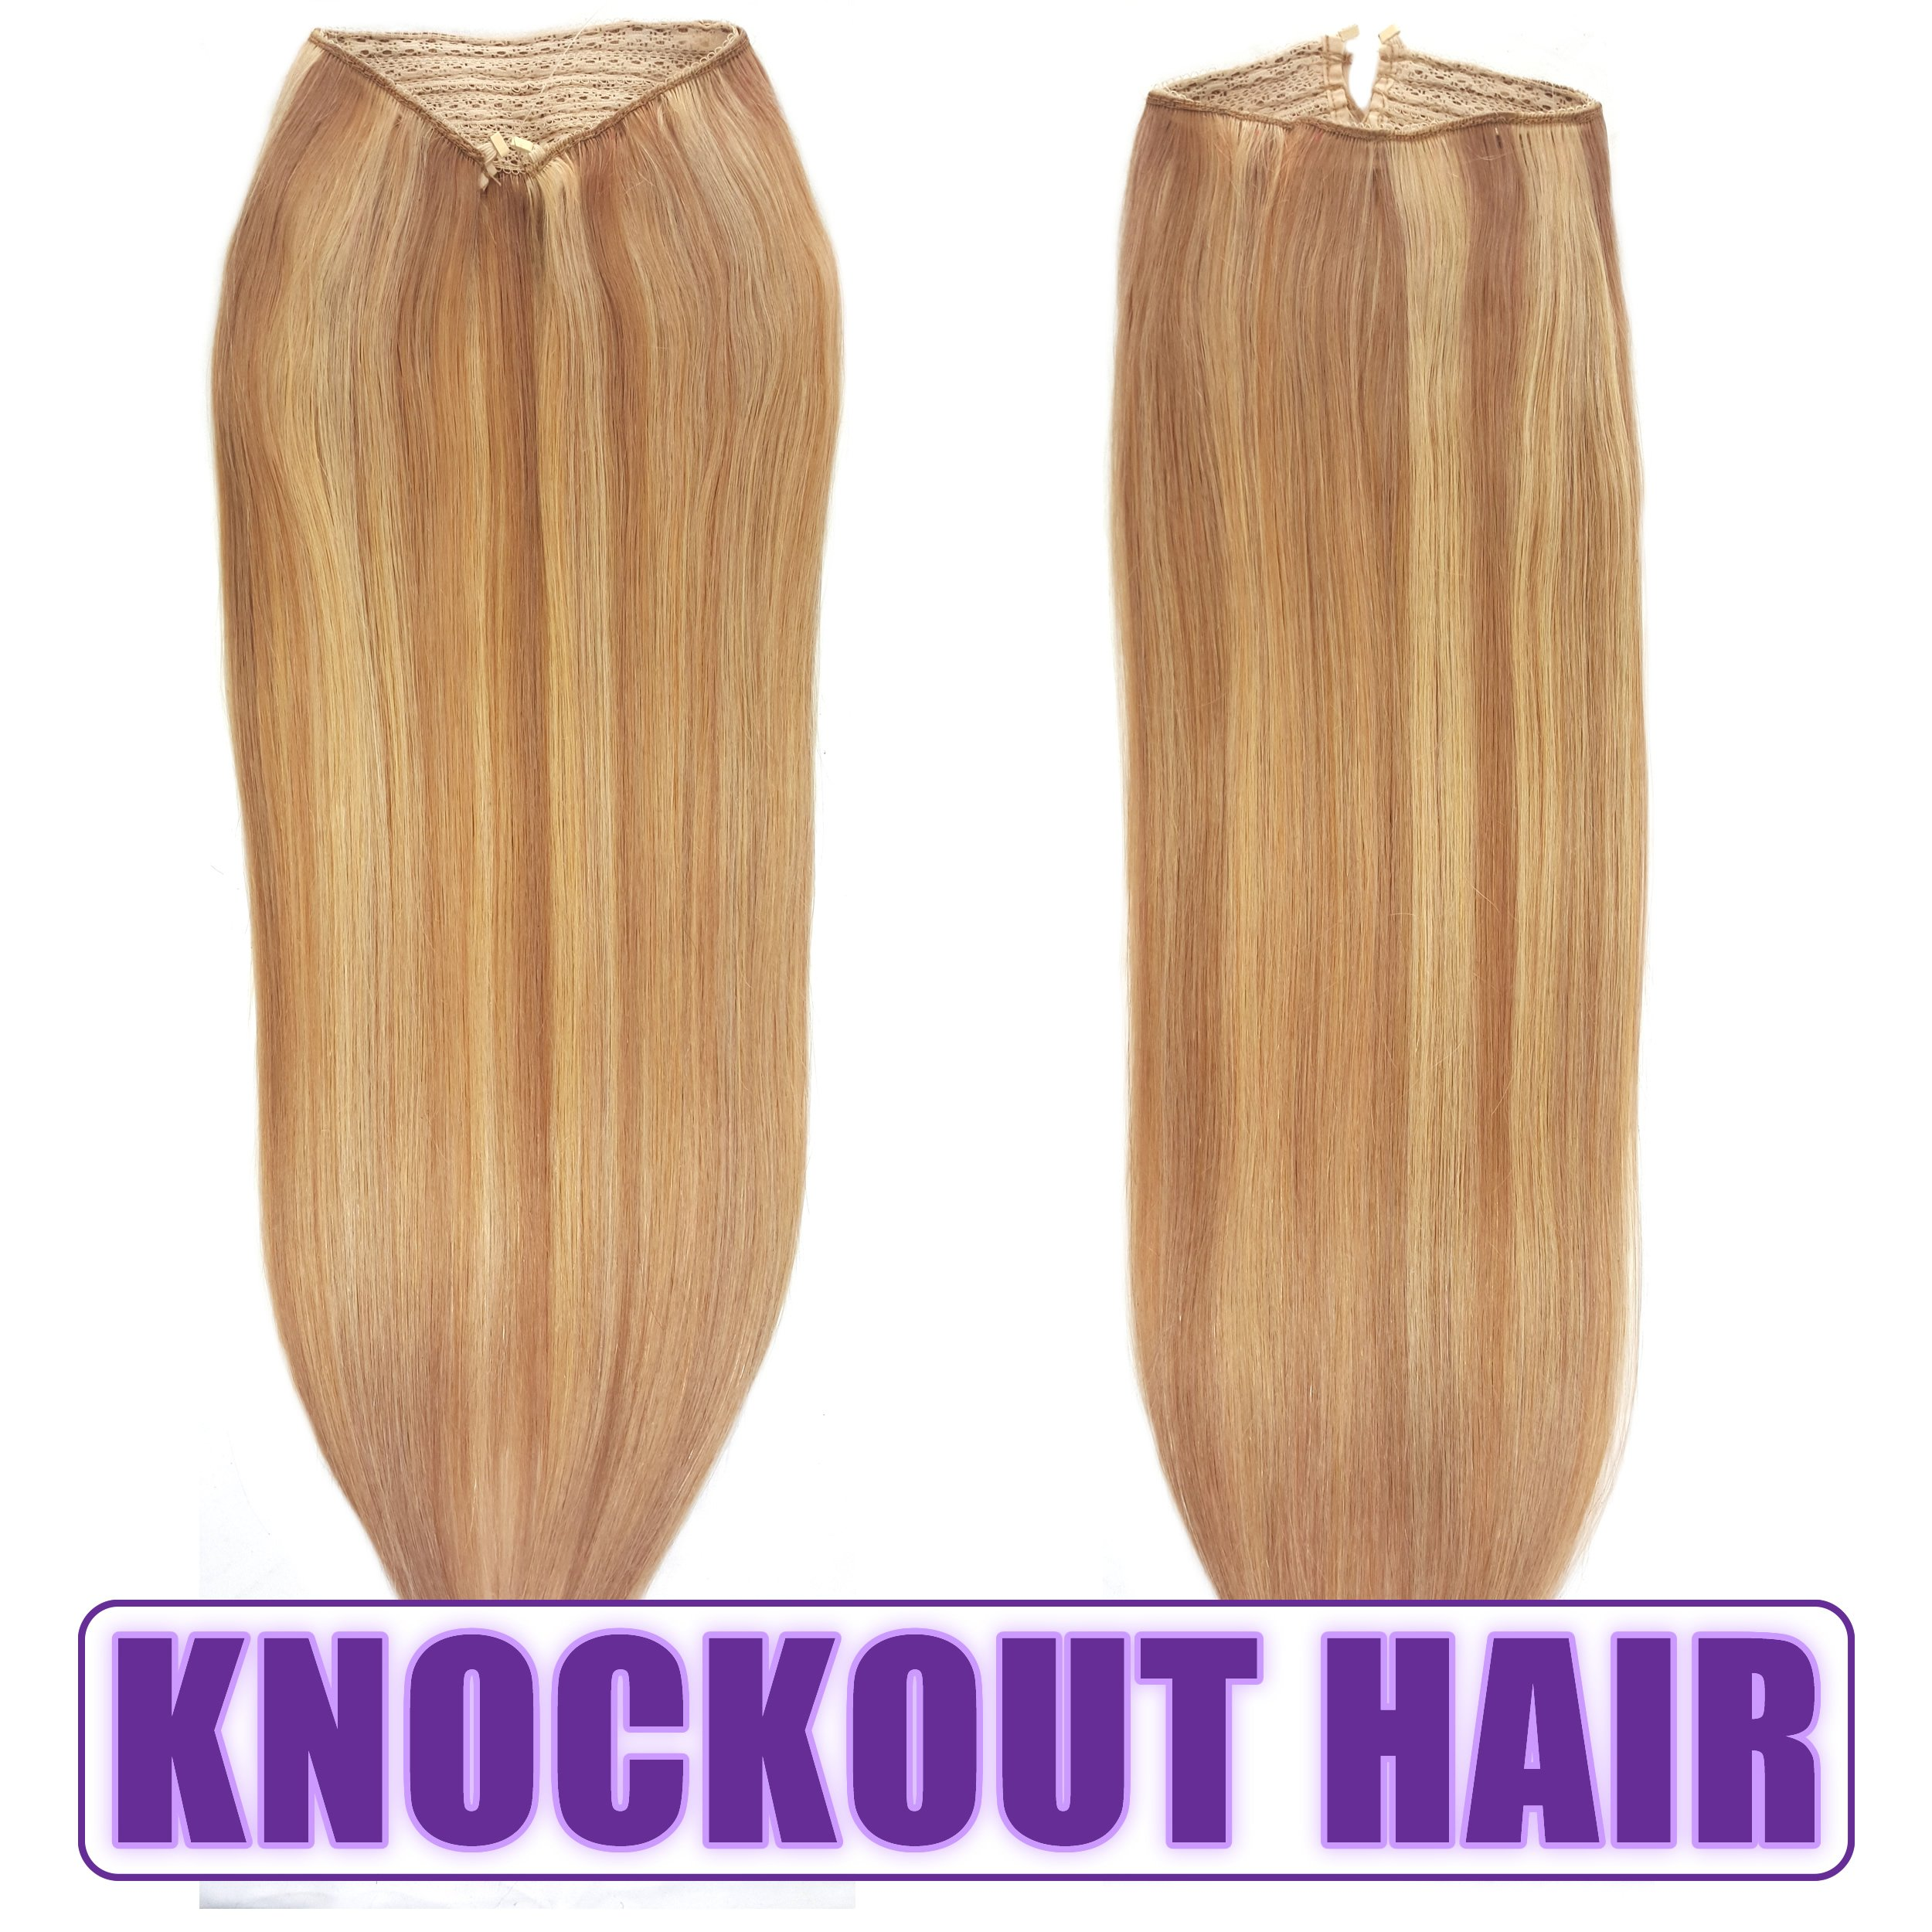 Fits like a Halo Hair Extensions 16''-18'' - No Clips, No glue, No Tape, No Damage! It's so EASY! 100% Remy Premium Couture Grade AAAAA Human Hair! (Golden Brown Swedish Blonde Mix 16'' P#12/20) by Knockout Hair